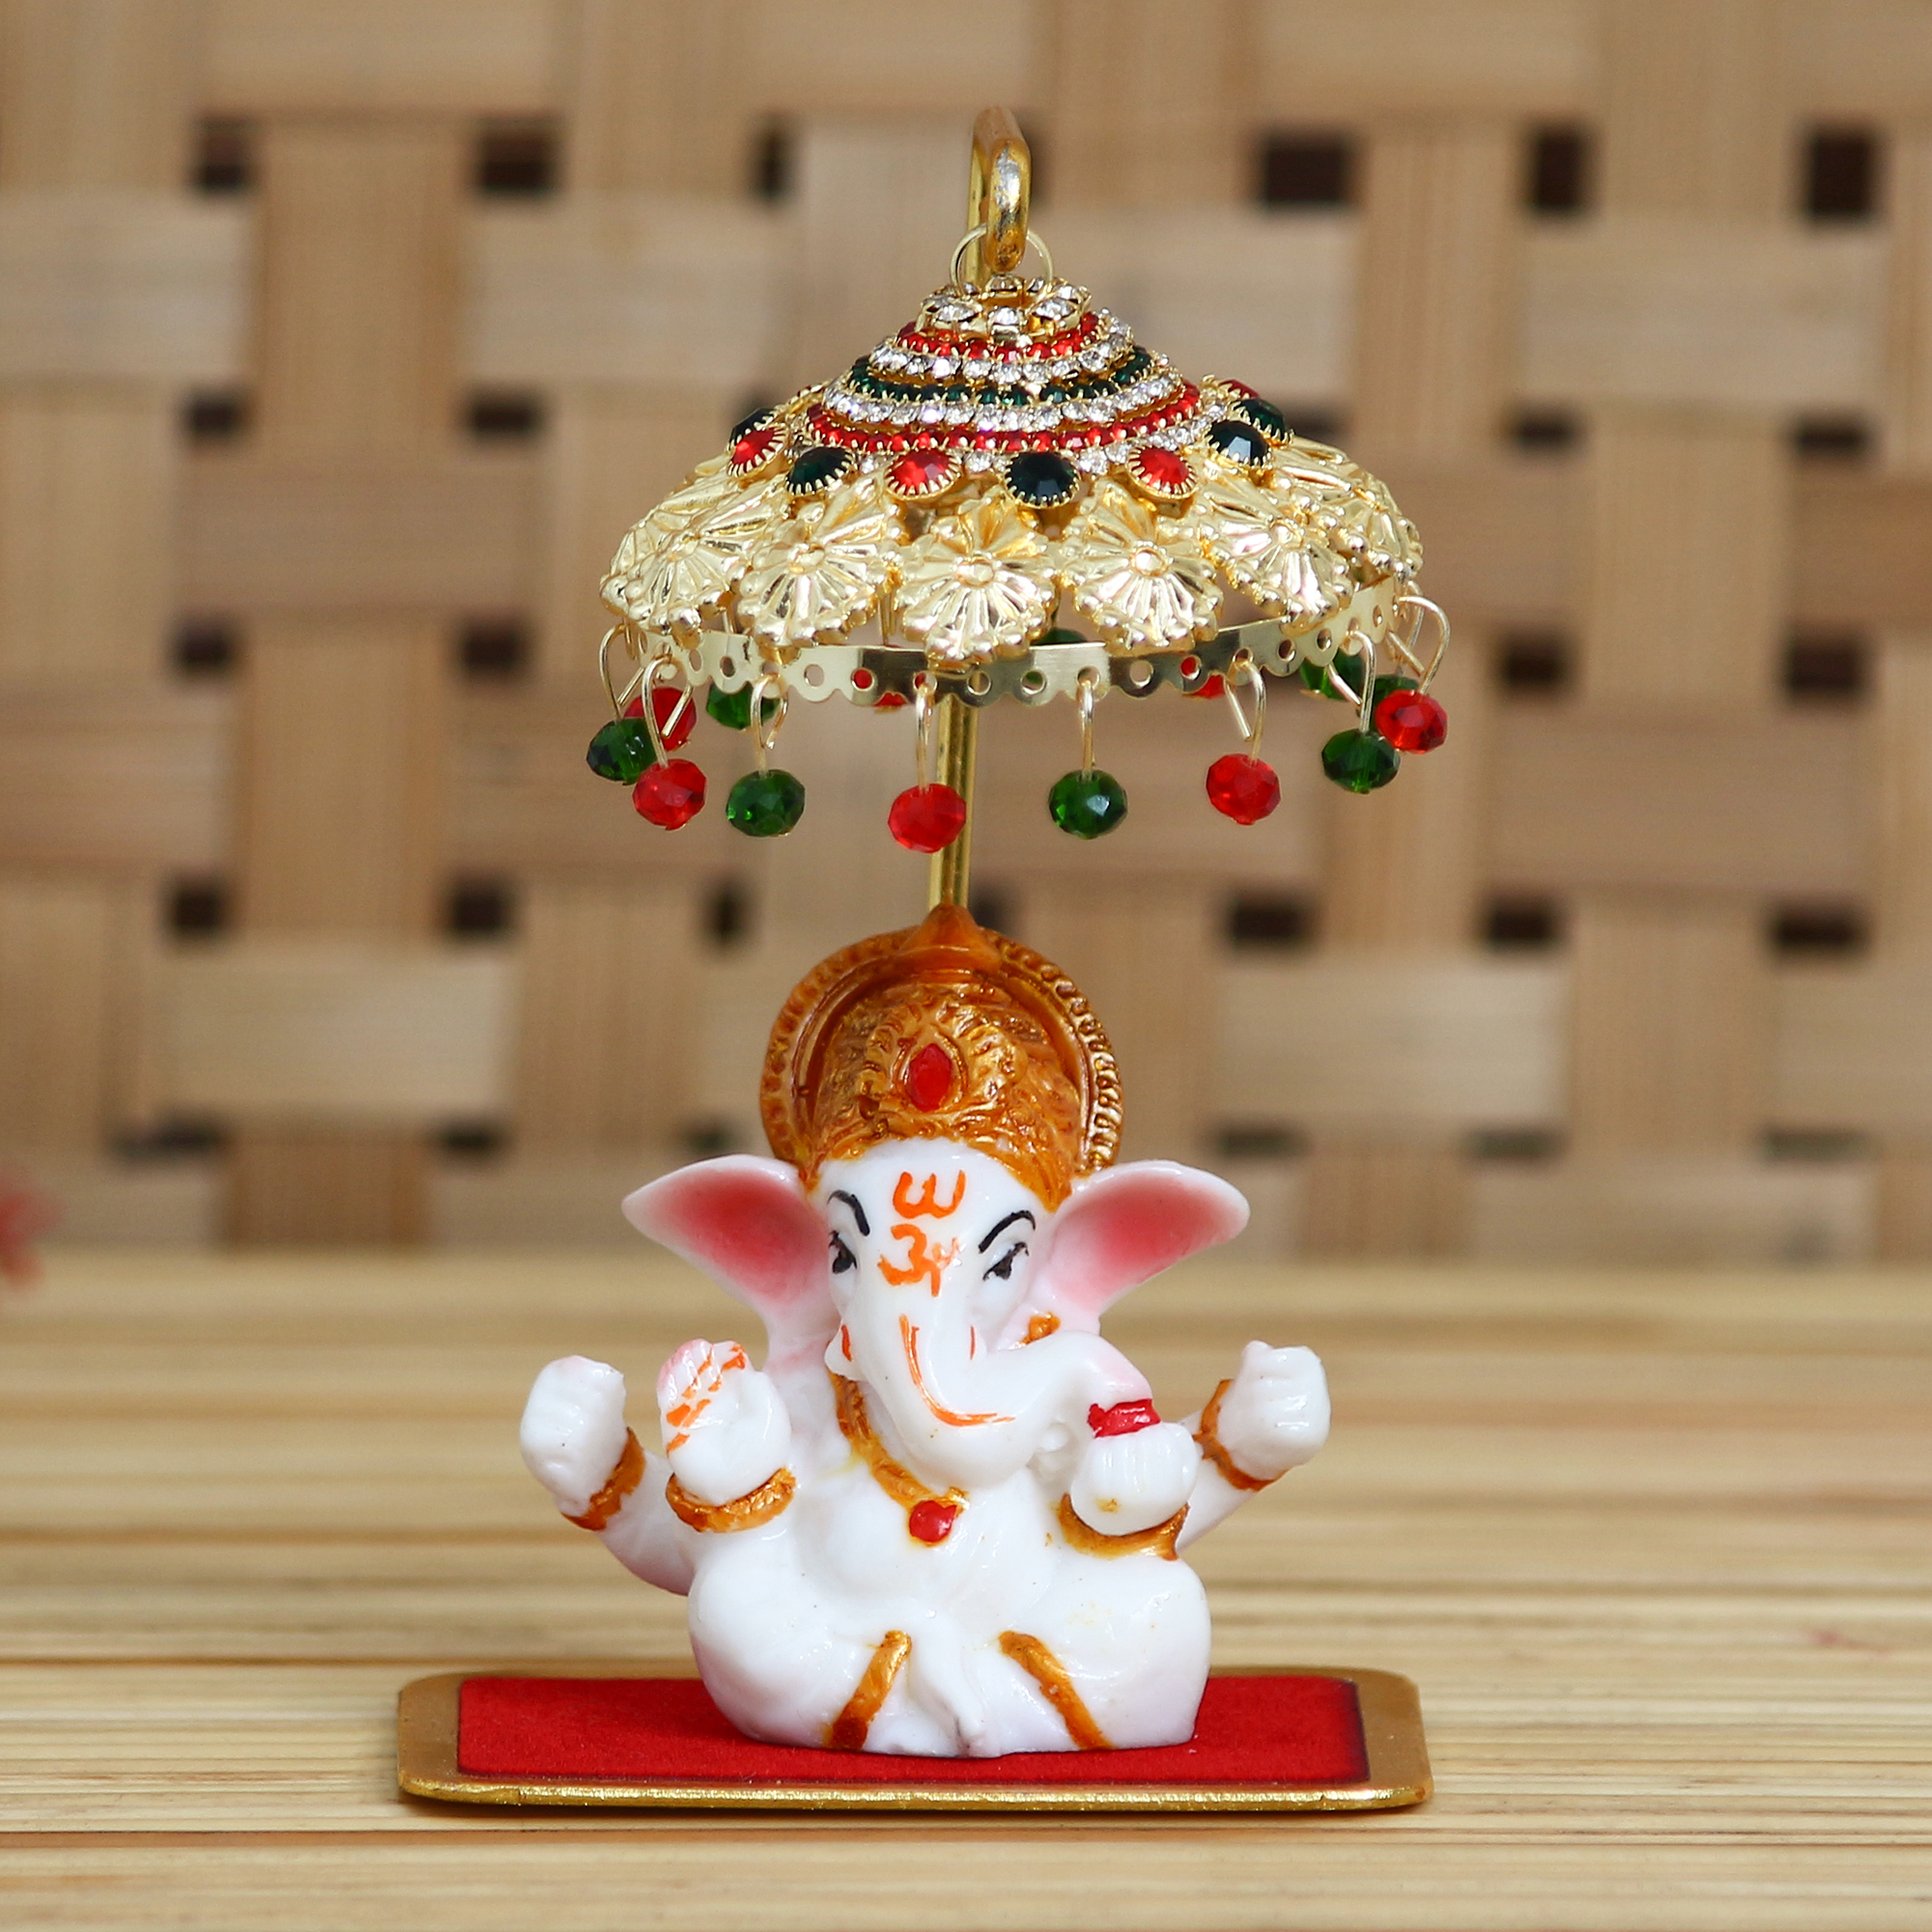 Decorative Lord Ganesha Idol with Designer Chatri for Car Dashboard, Home Temple and Office Desks Indian Home Decor